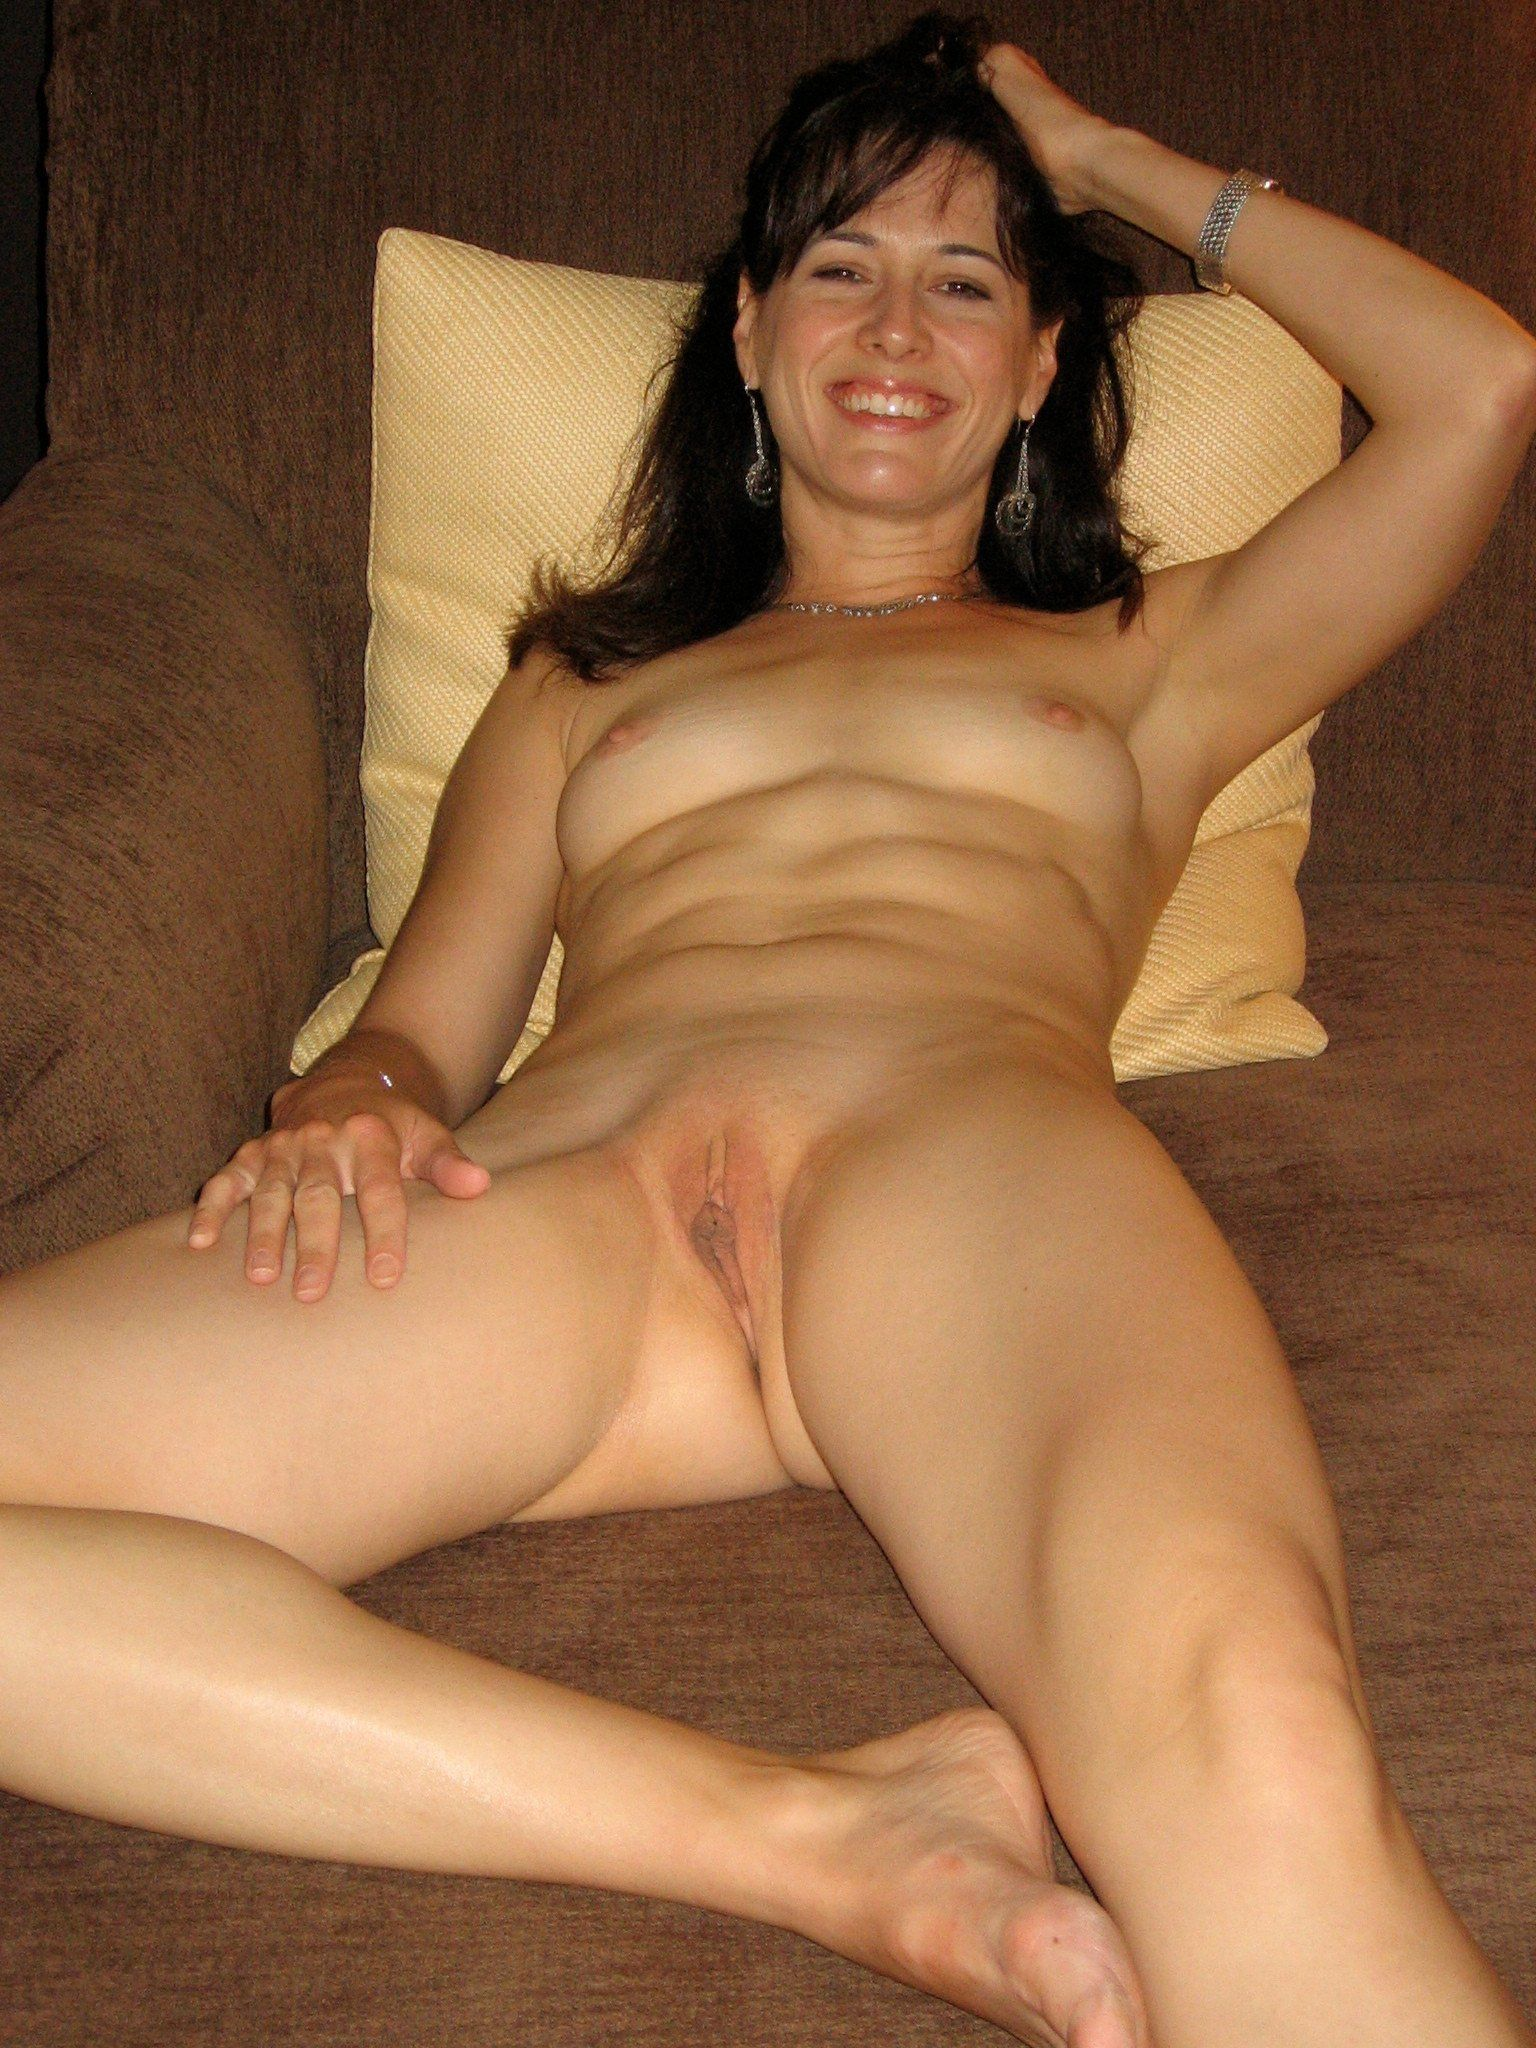 Can free pics website add milf assured, that